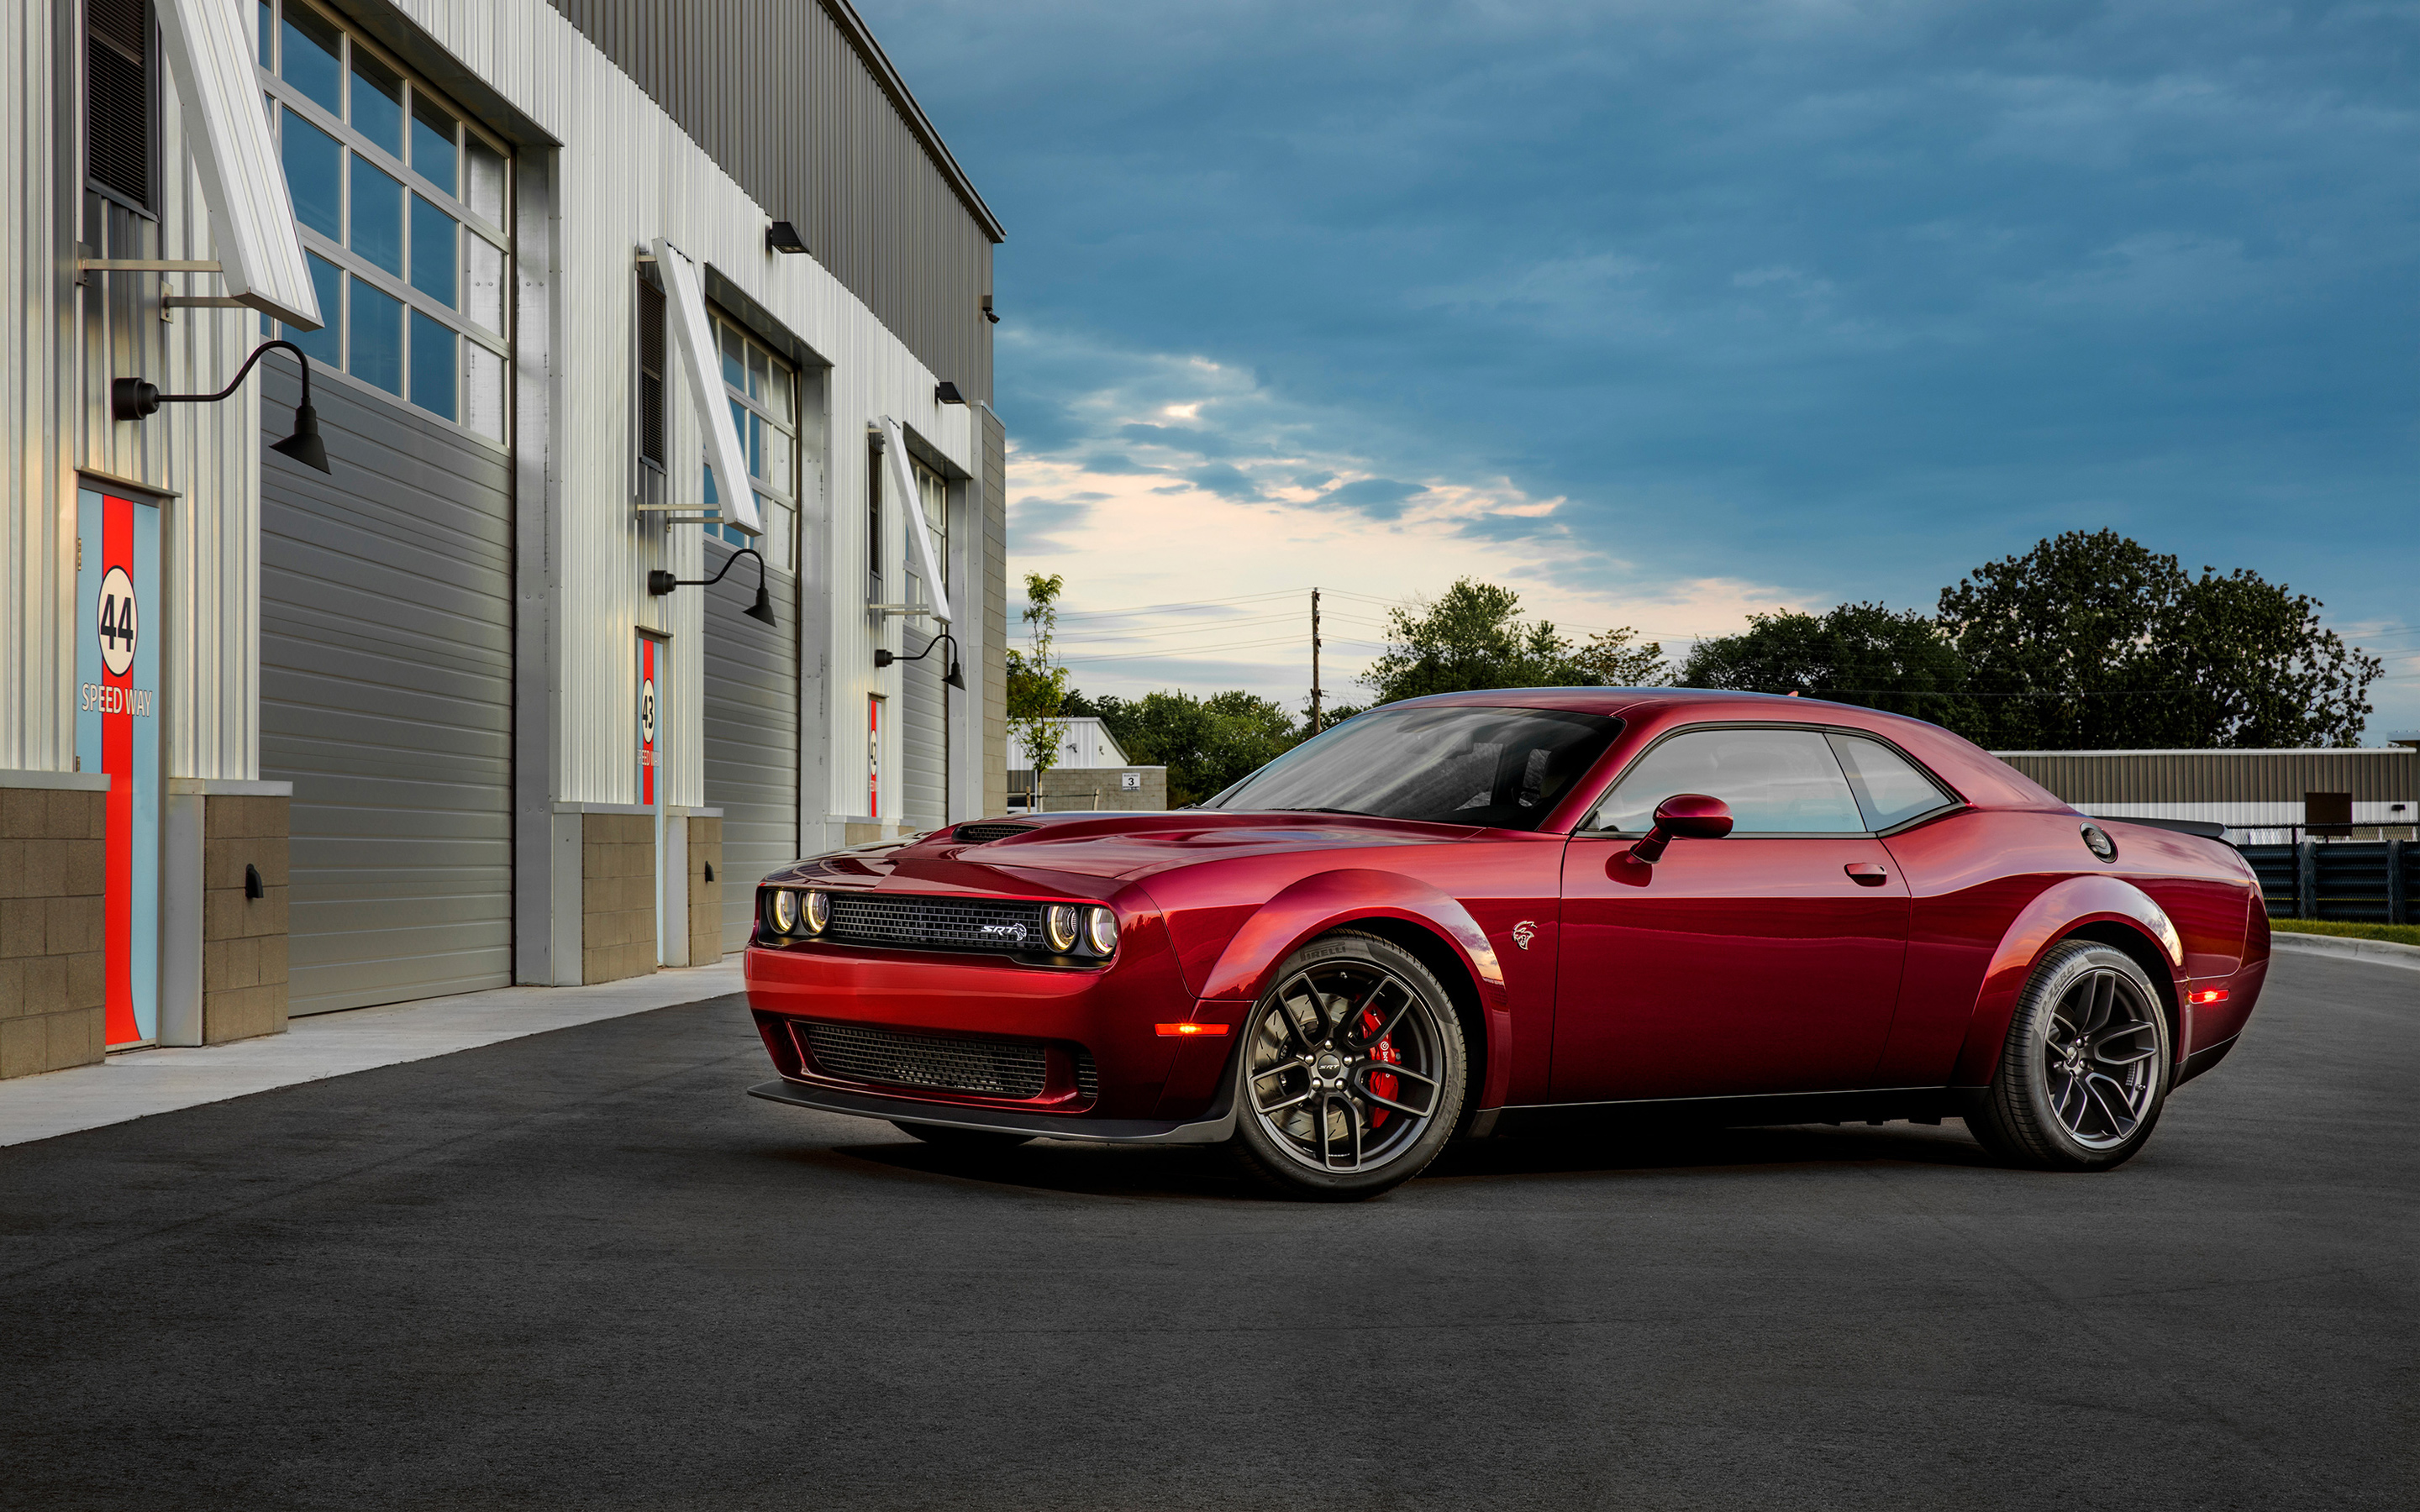 2018 Dodge Challenger Srt Hellcat Widebody Wallpapers Hd Wallpapers